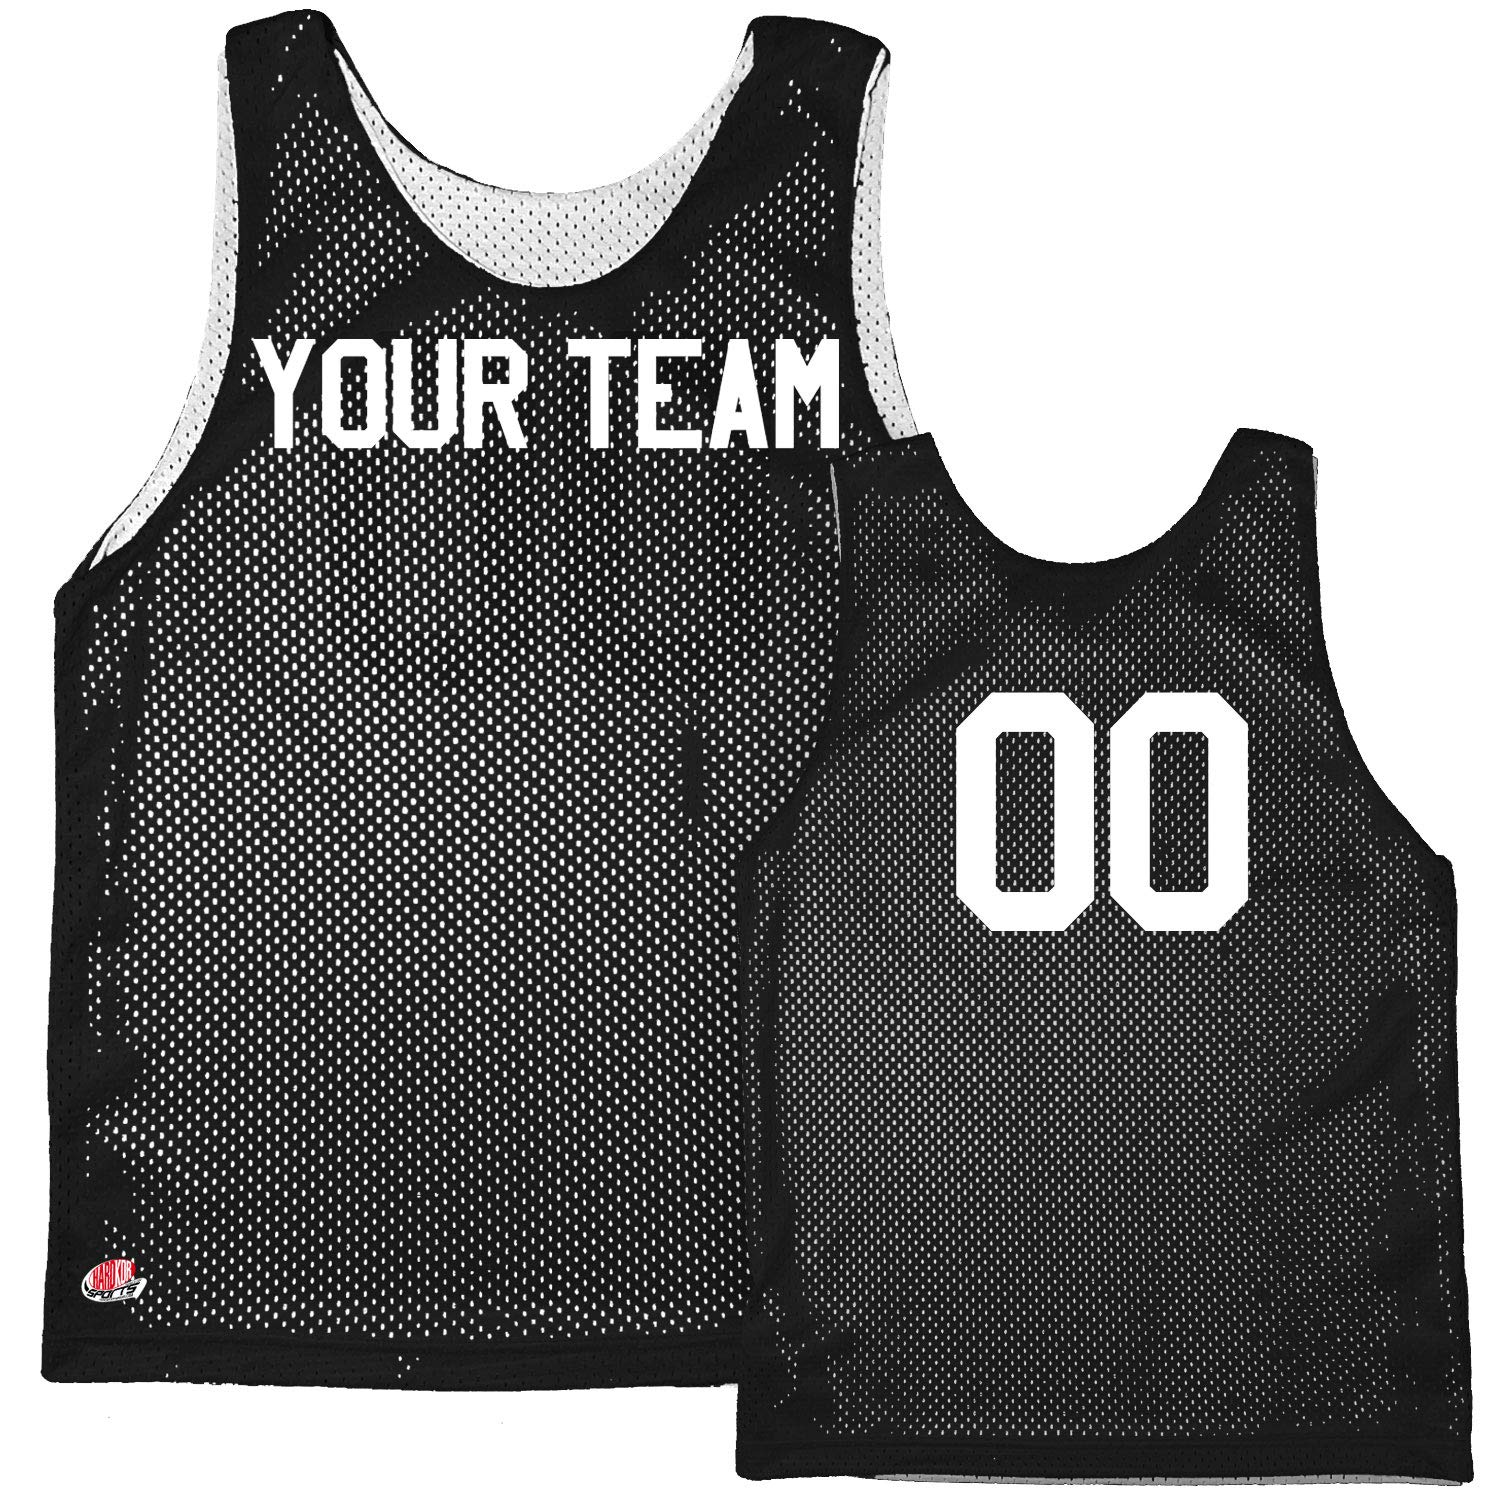 Basic Reversible Custom Basketball Jersey with Team Name and Player Number